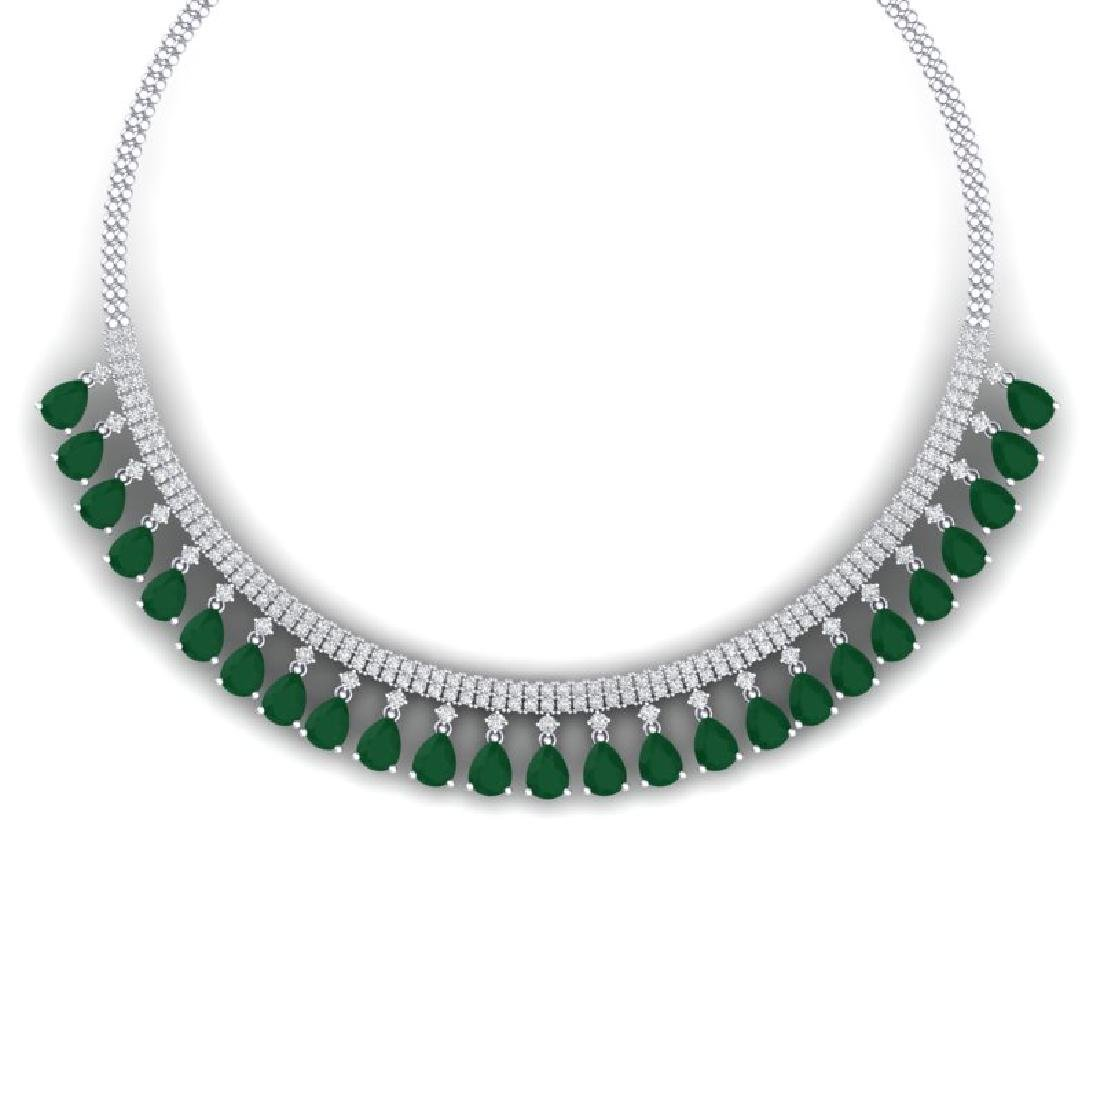 51.75 CTW Royalty Emerald & VS Diamond Necklace 18K